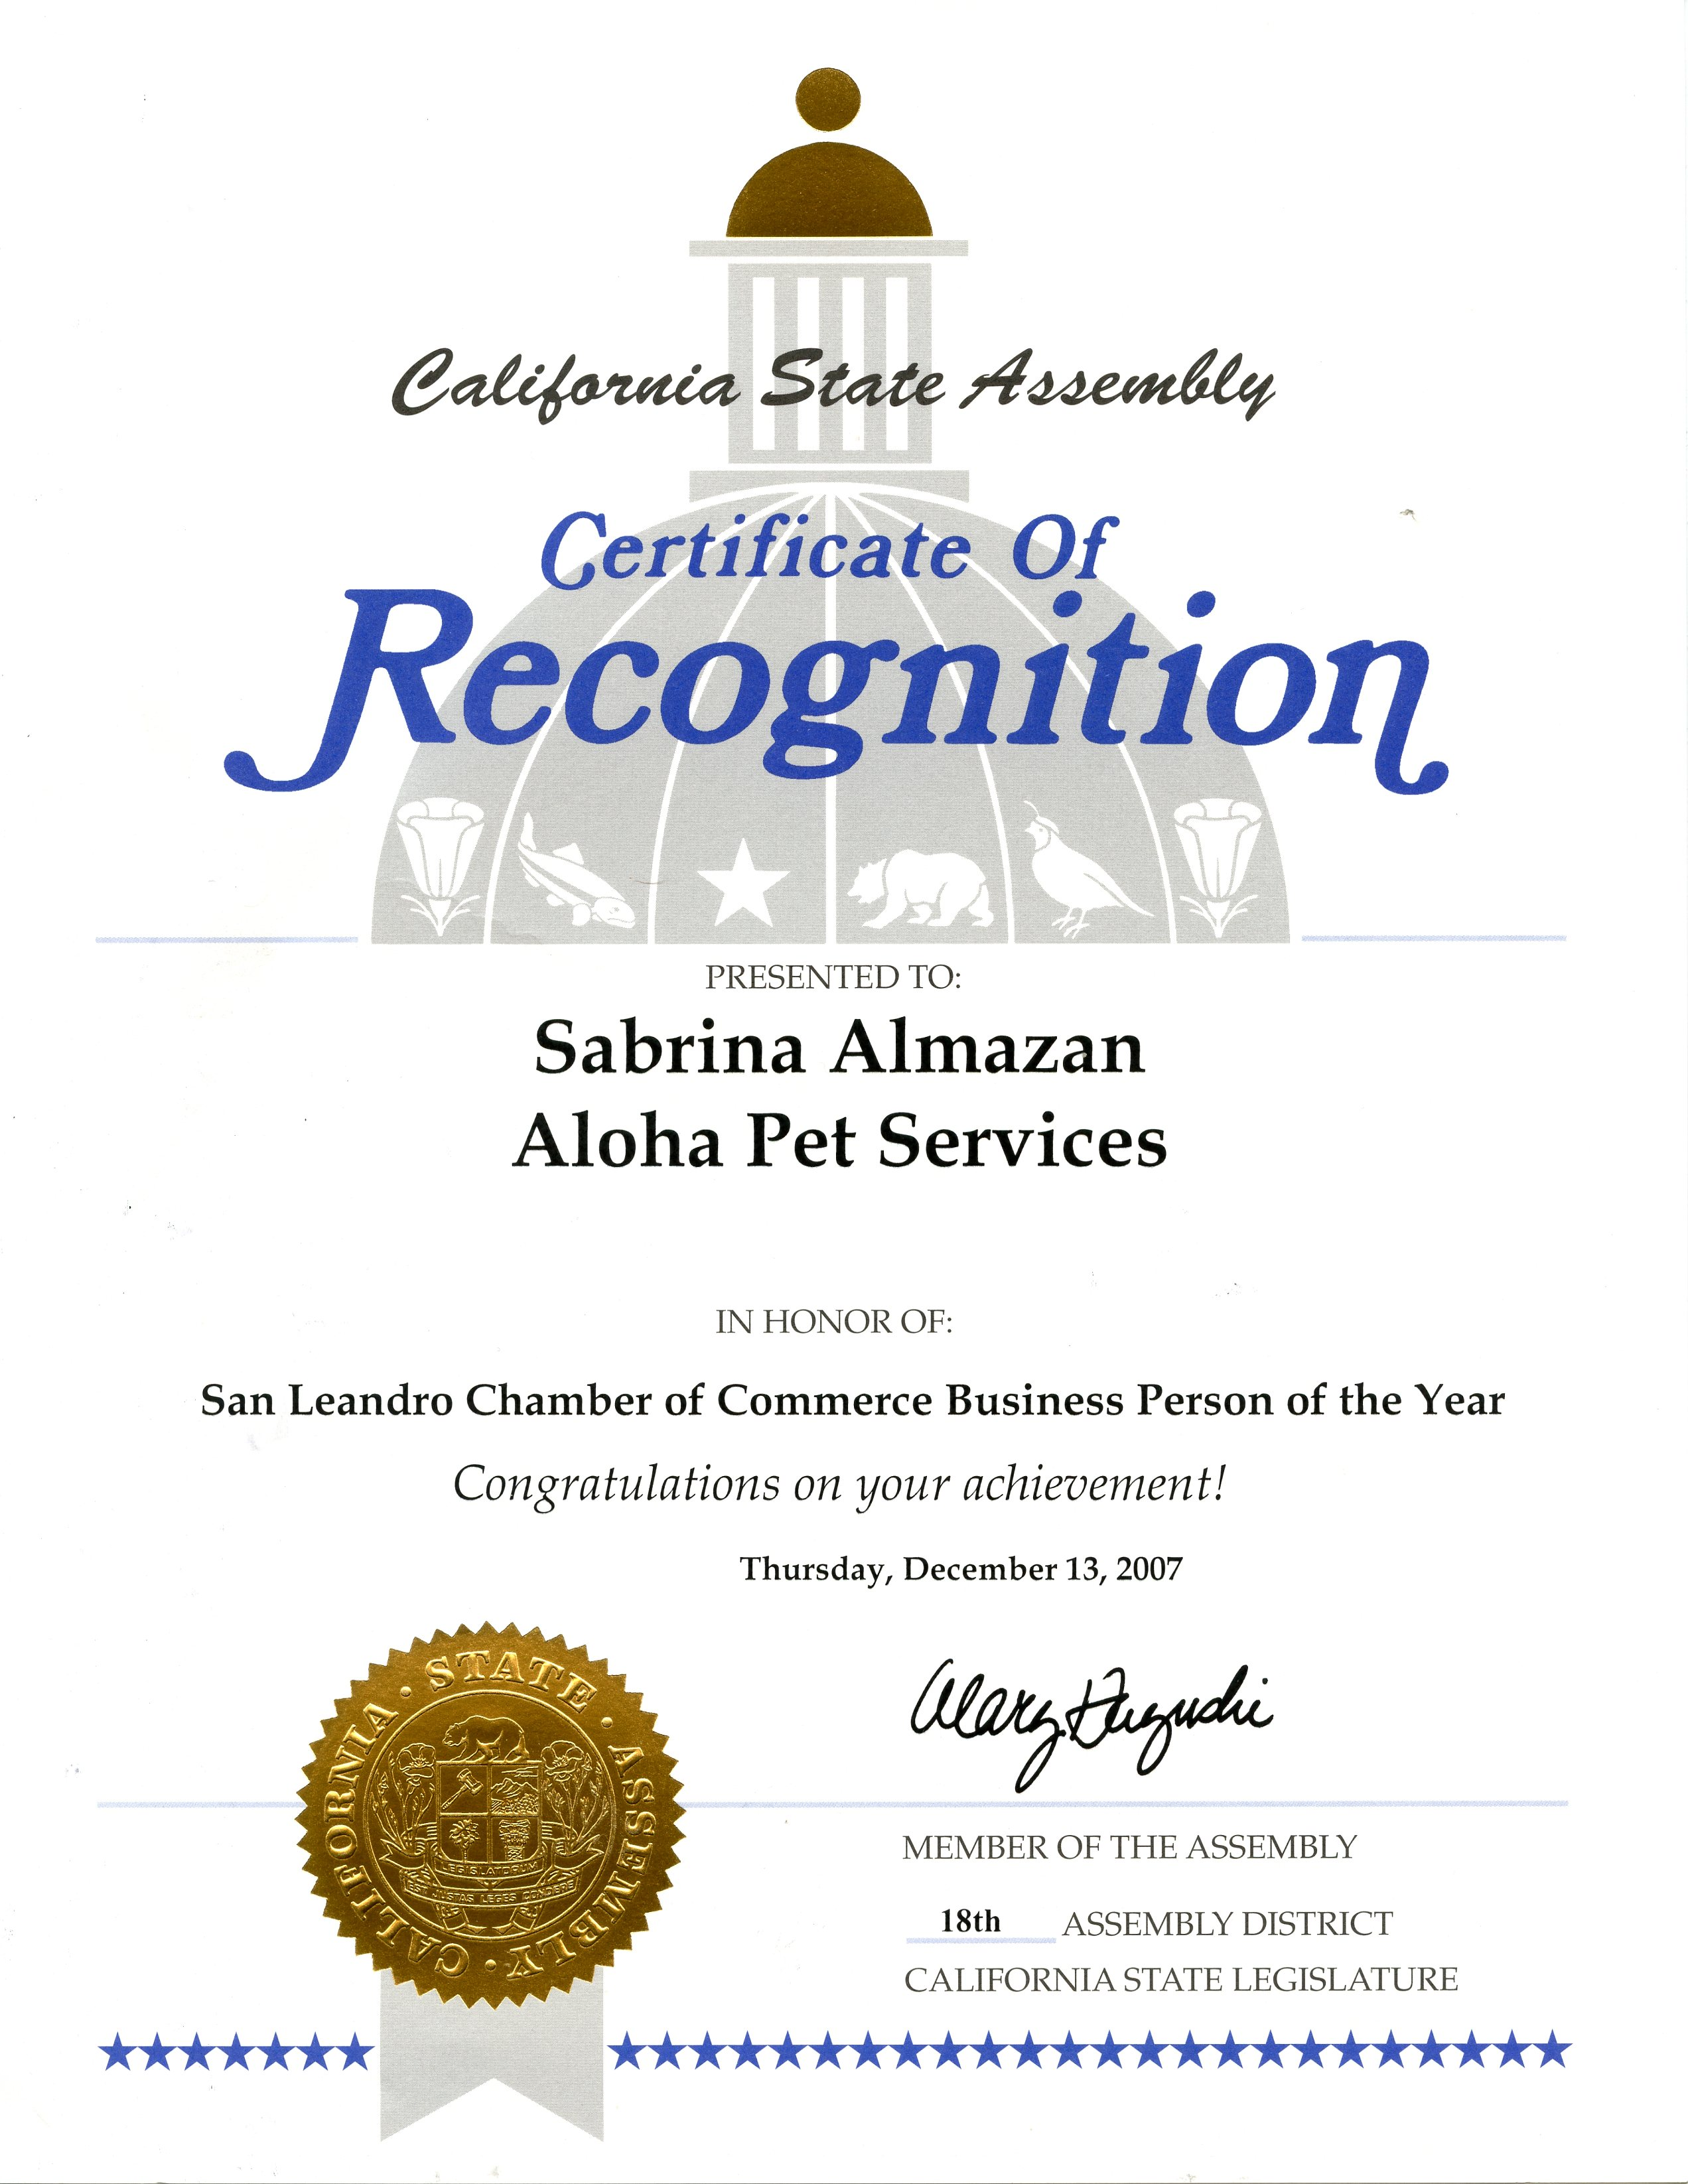 California State Assembly Business Person of the Year